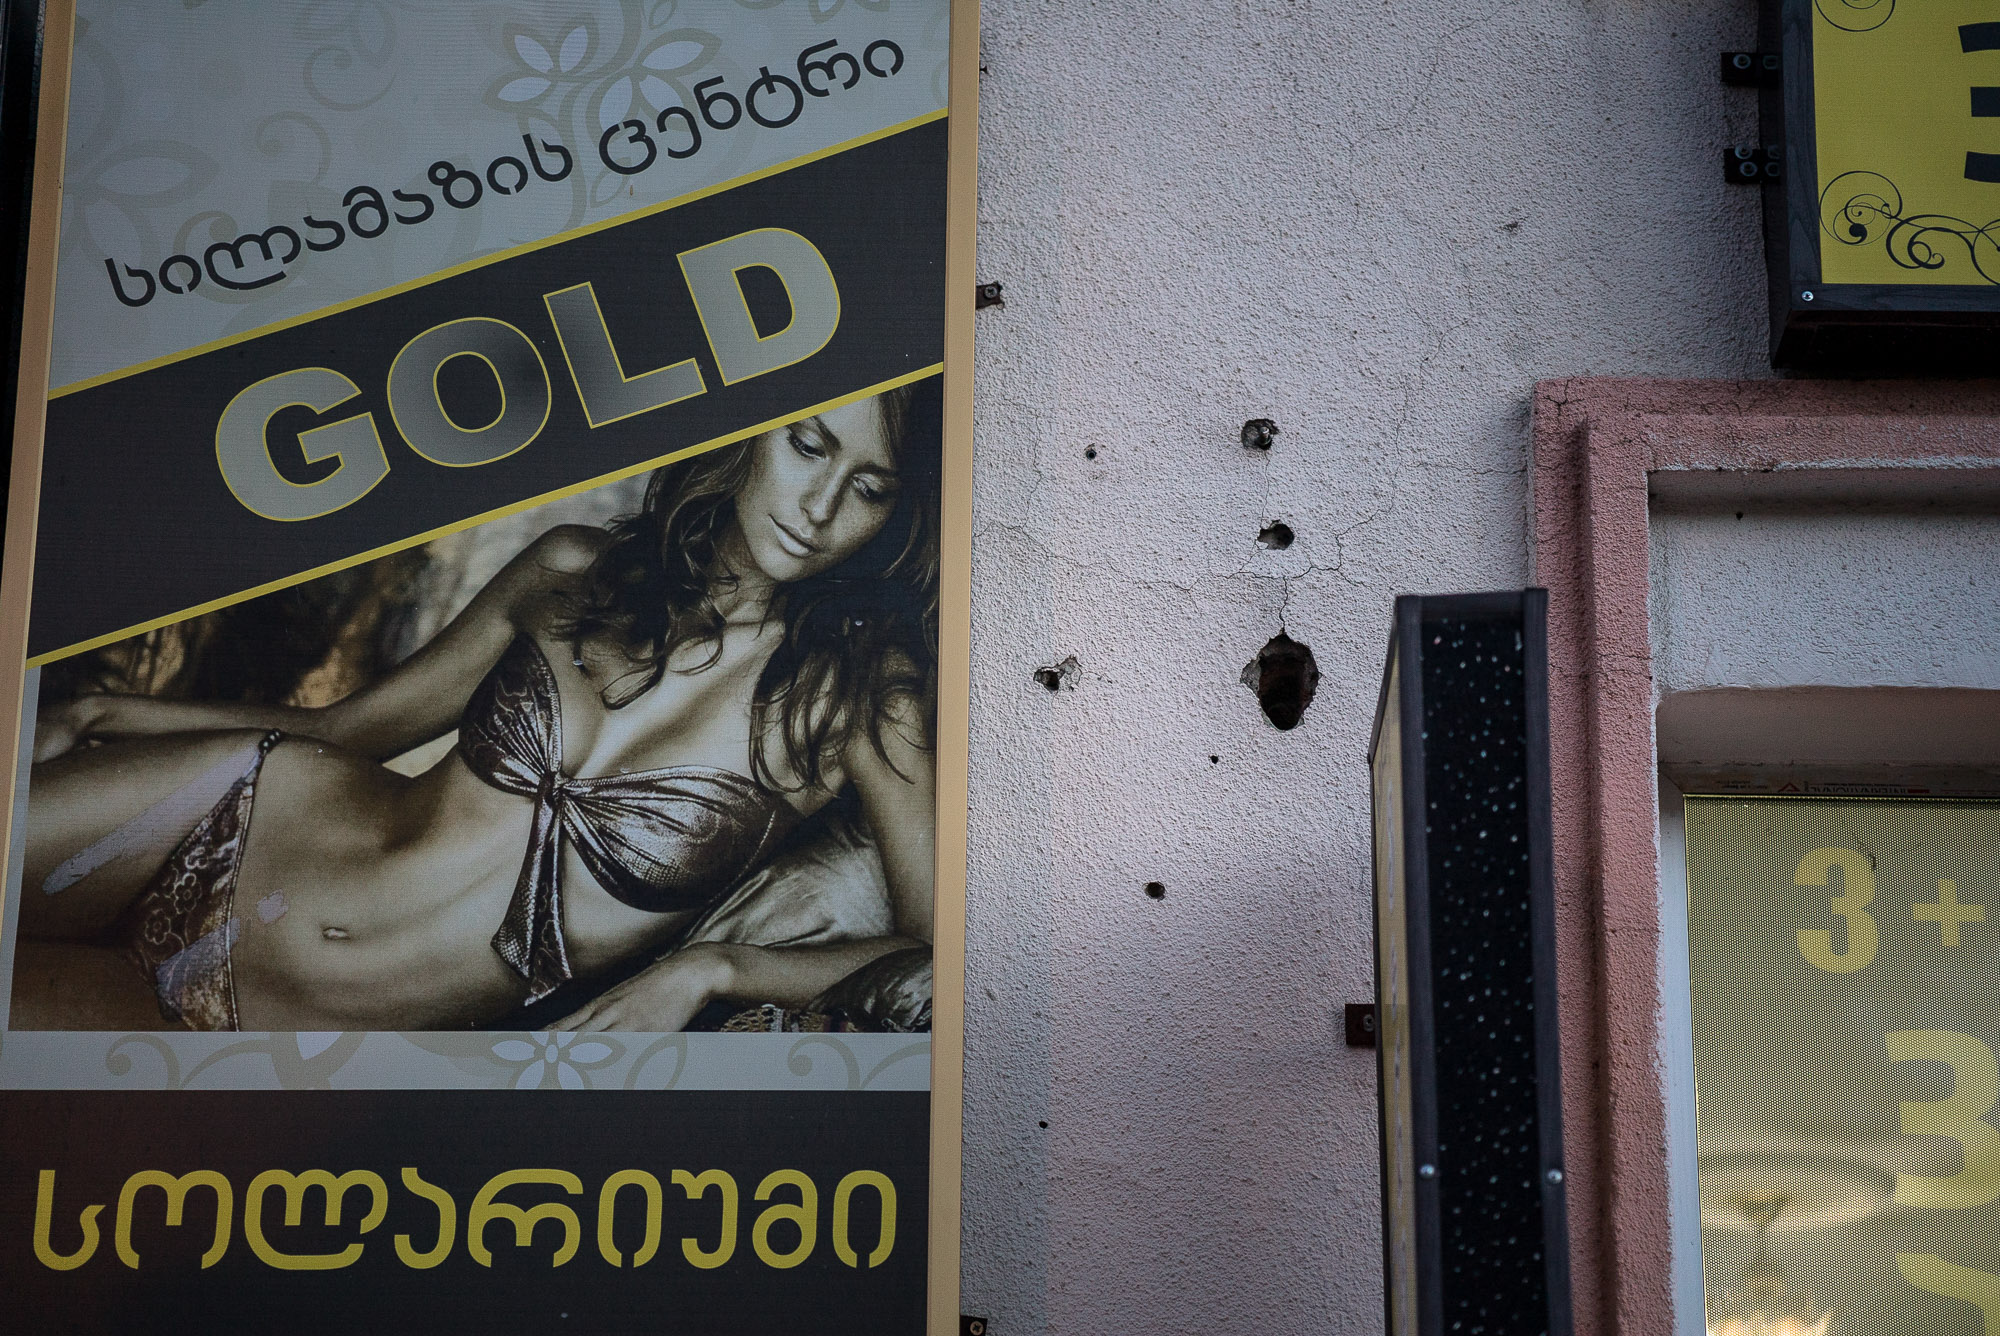 bullet holes next to a pawn shop